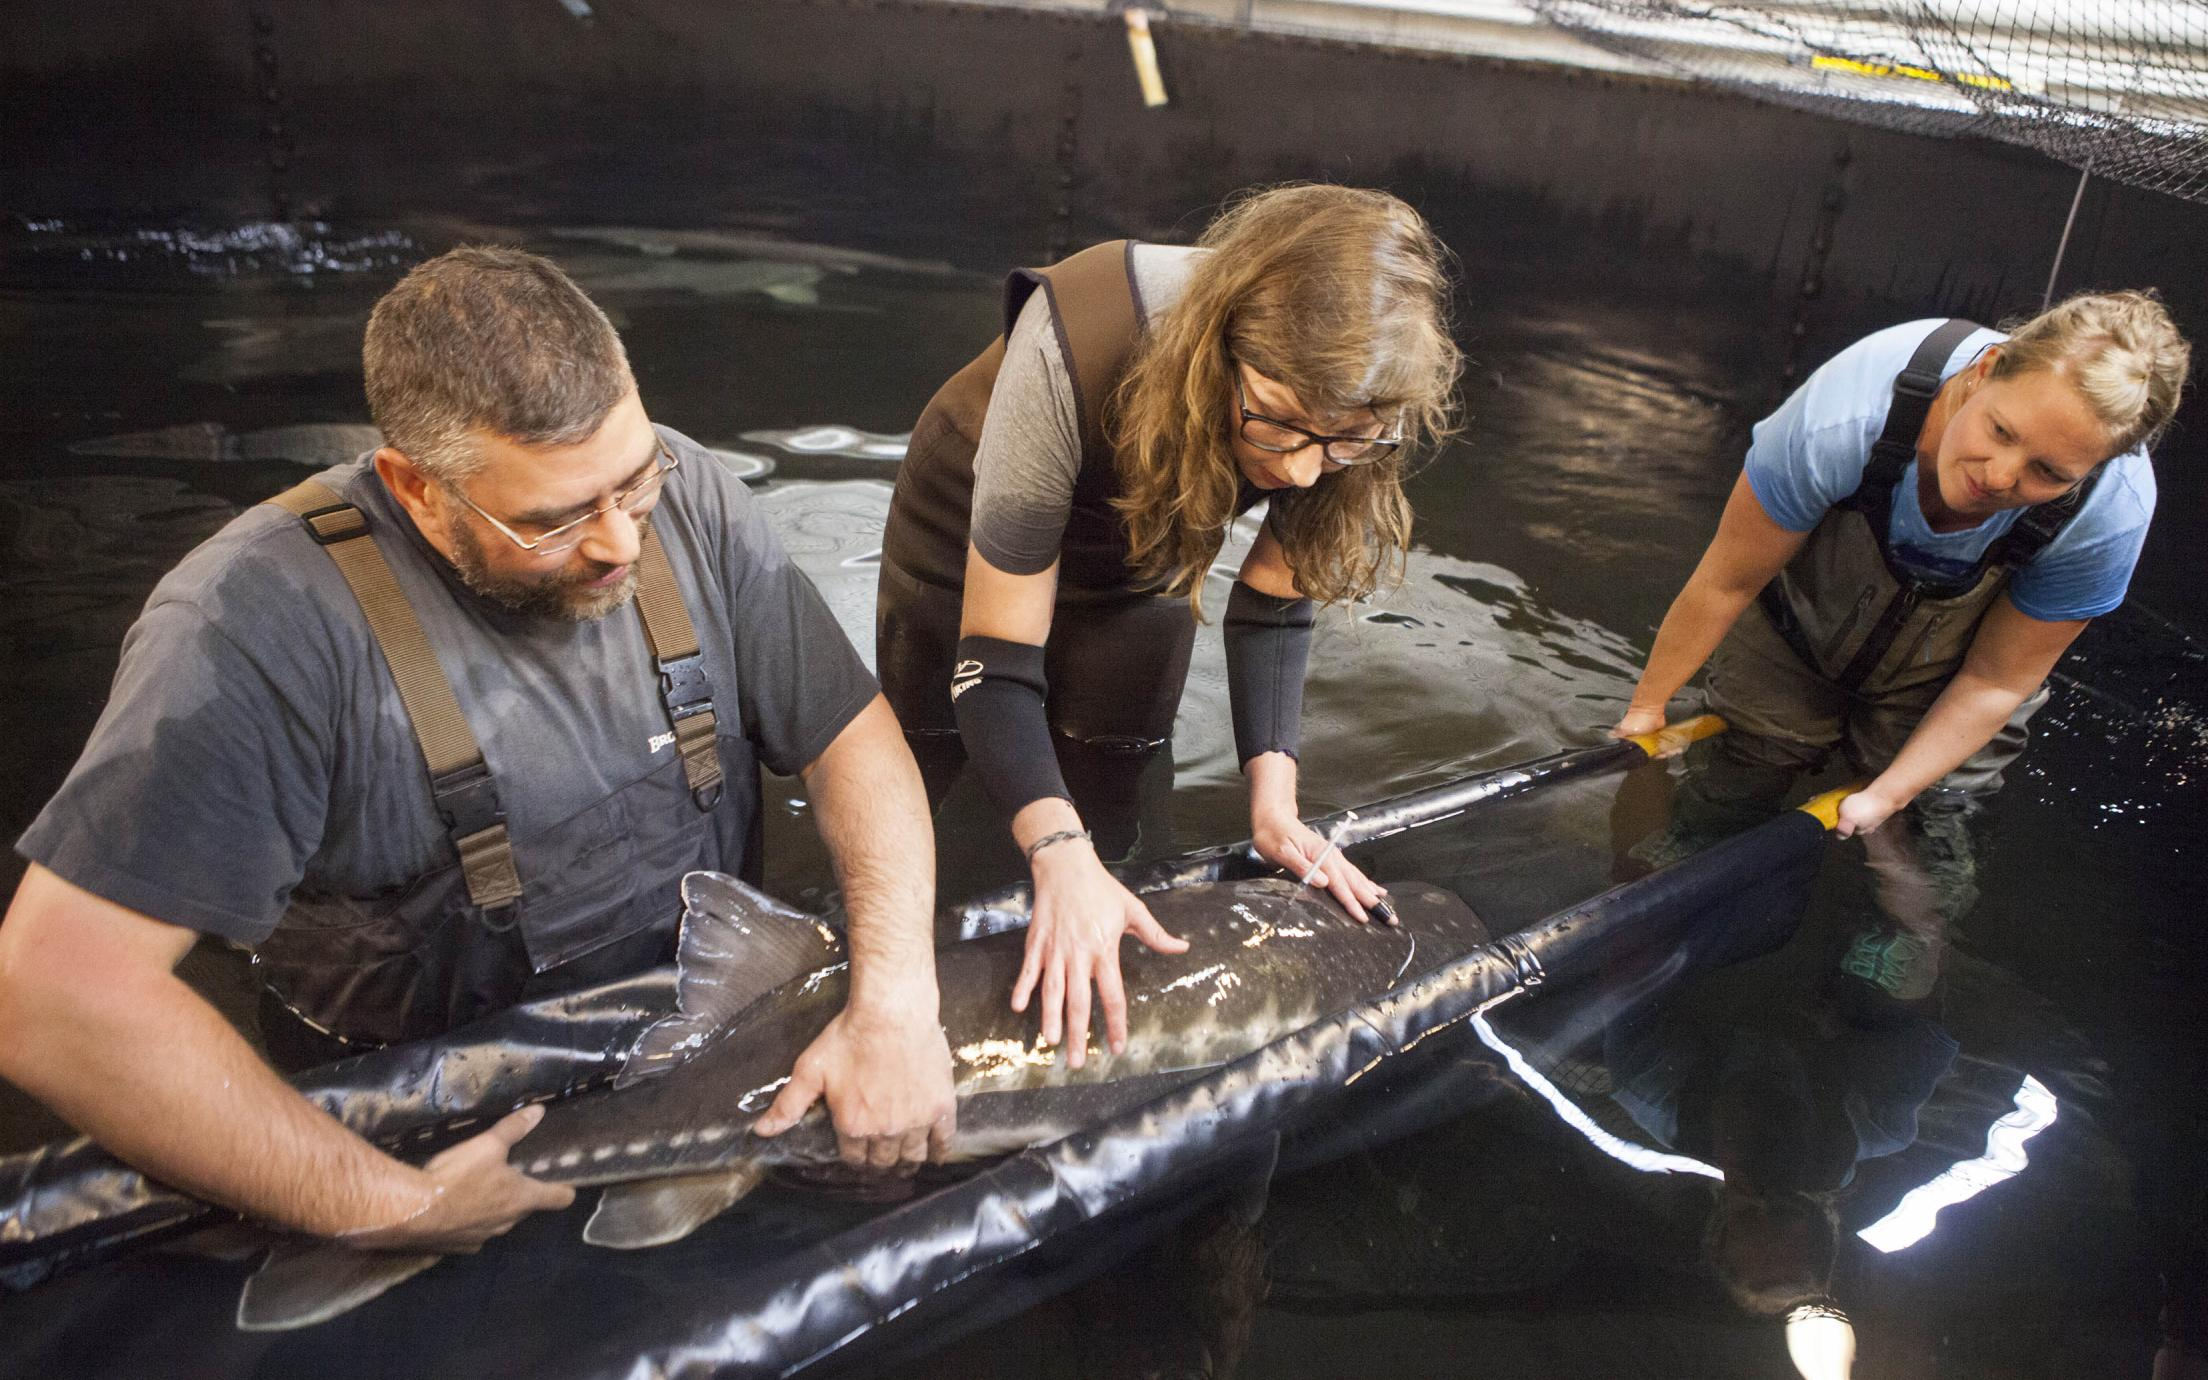 Bachelor of Science in Fisheries and Aquaculture Students rescuing a fish